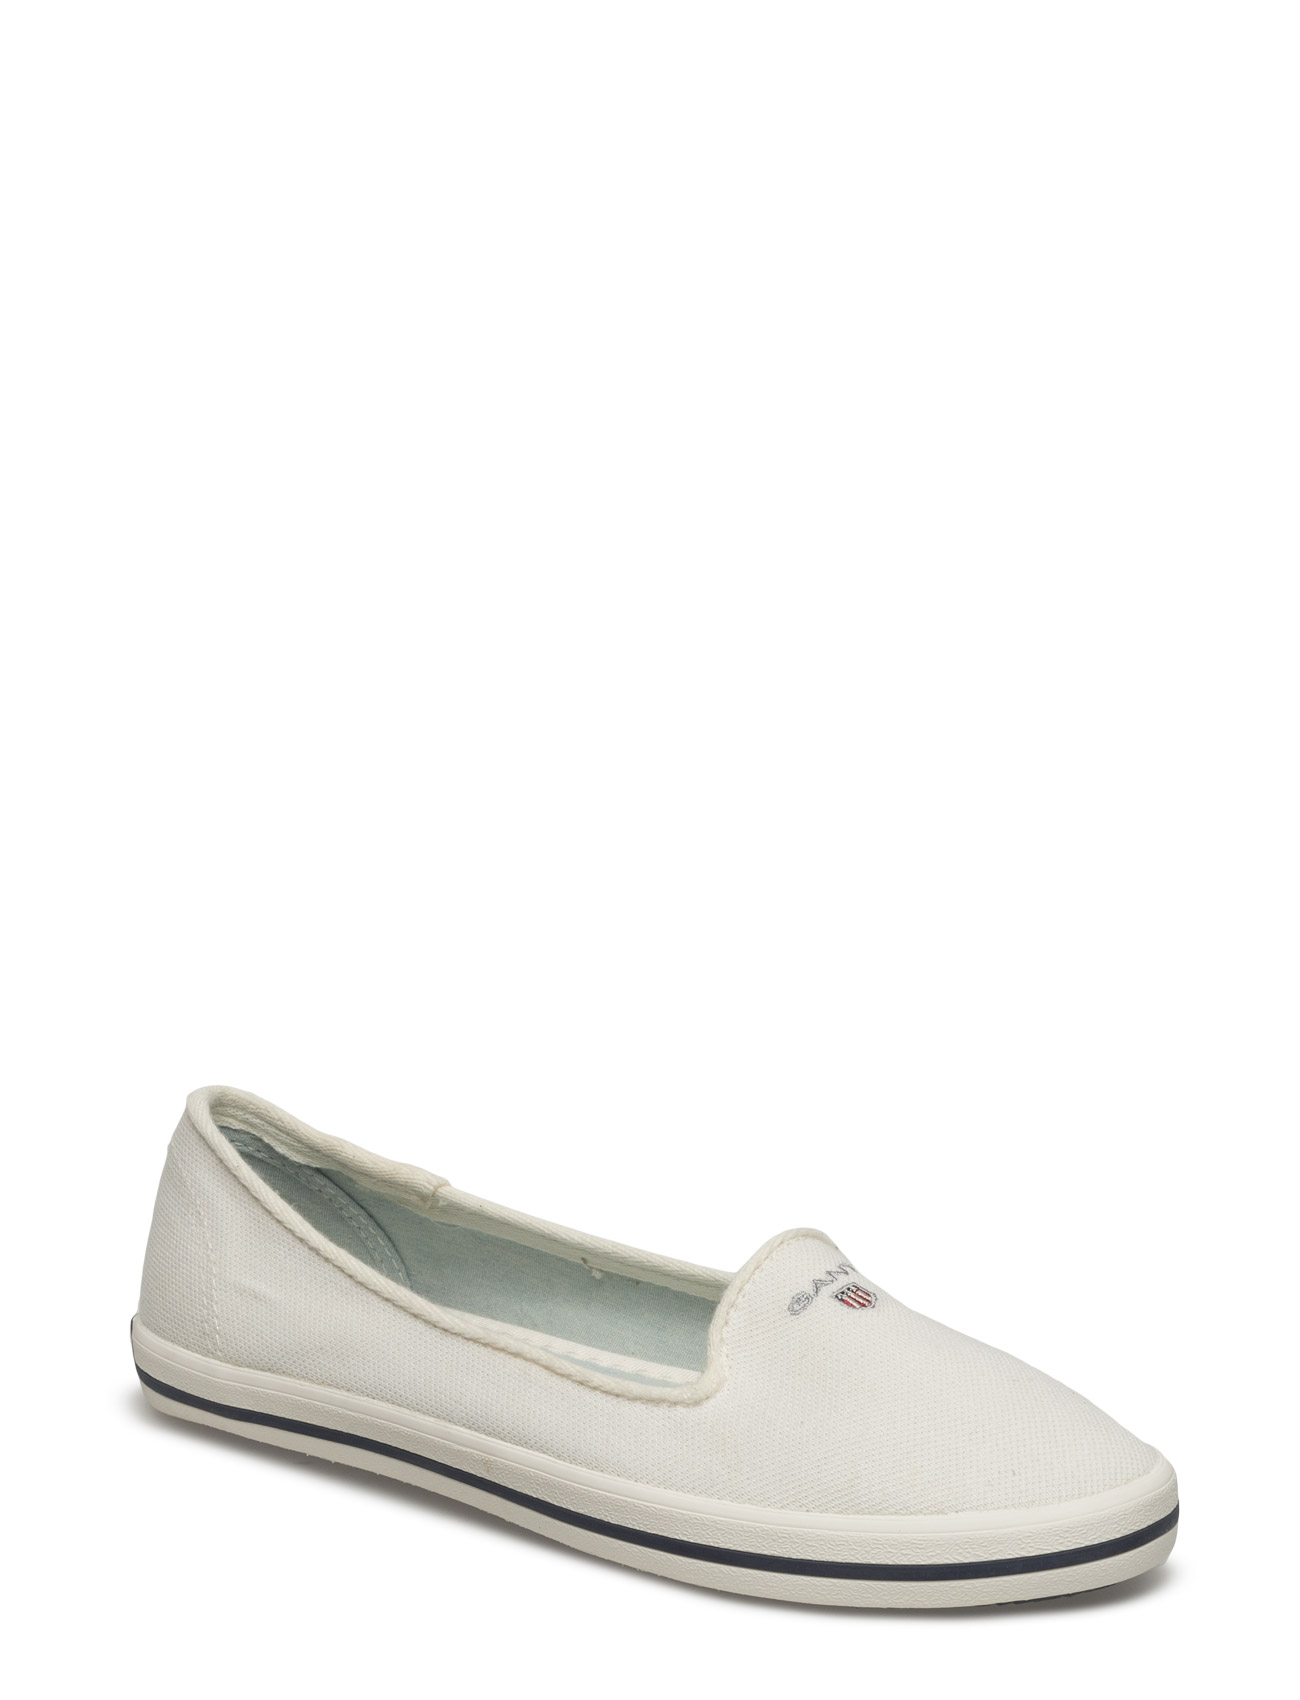 New Haven Slip-On Shoes GANT Sko til Kvinder i